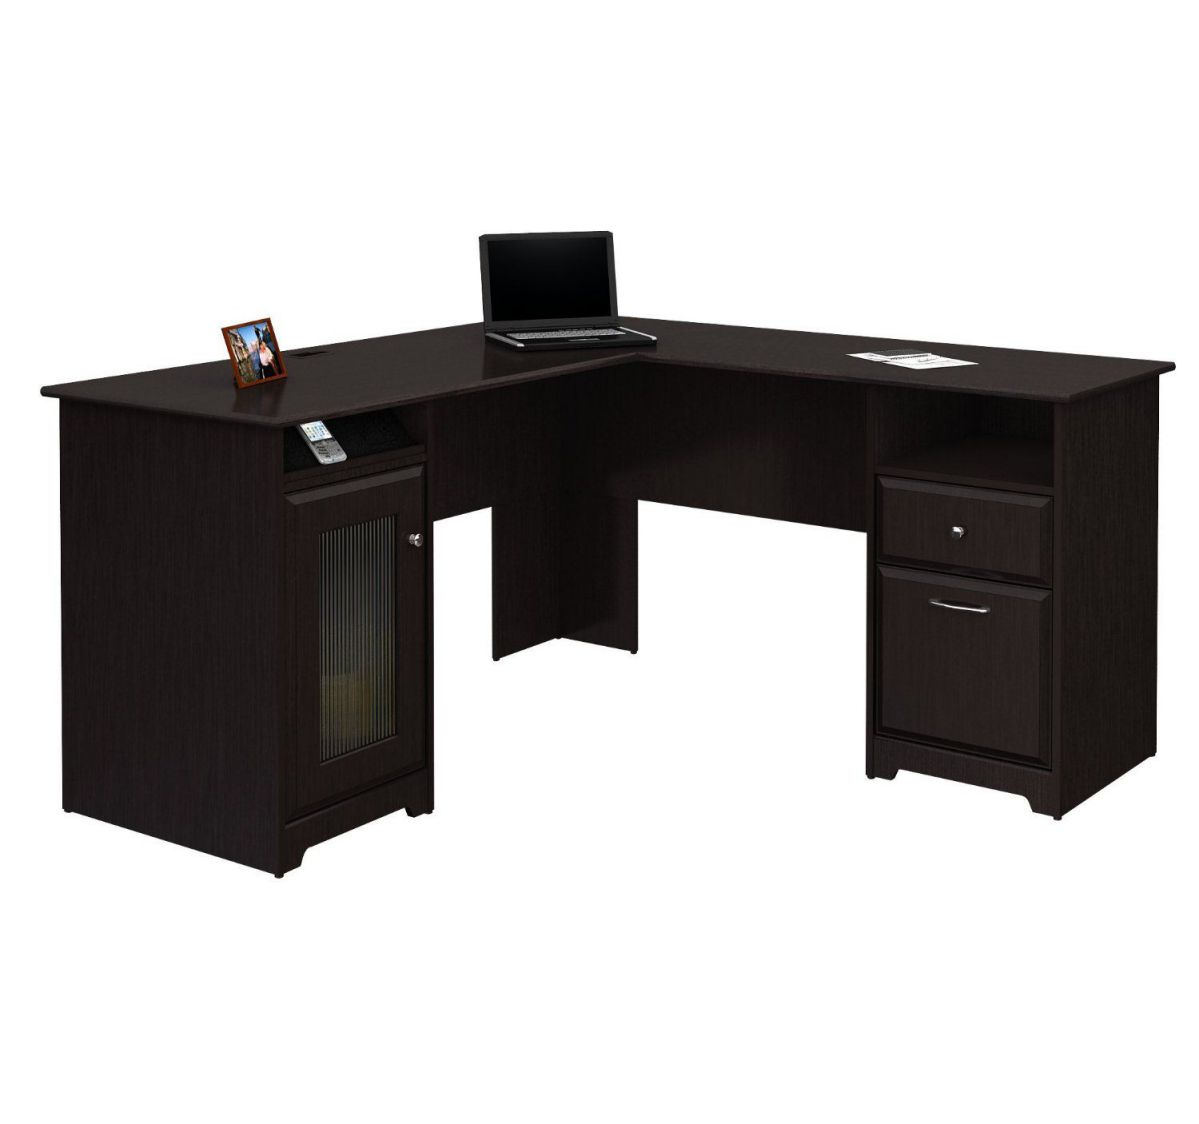 Bush Cabot collection 60 l-shaped desk with hutch